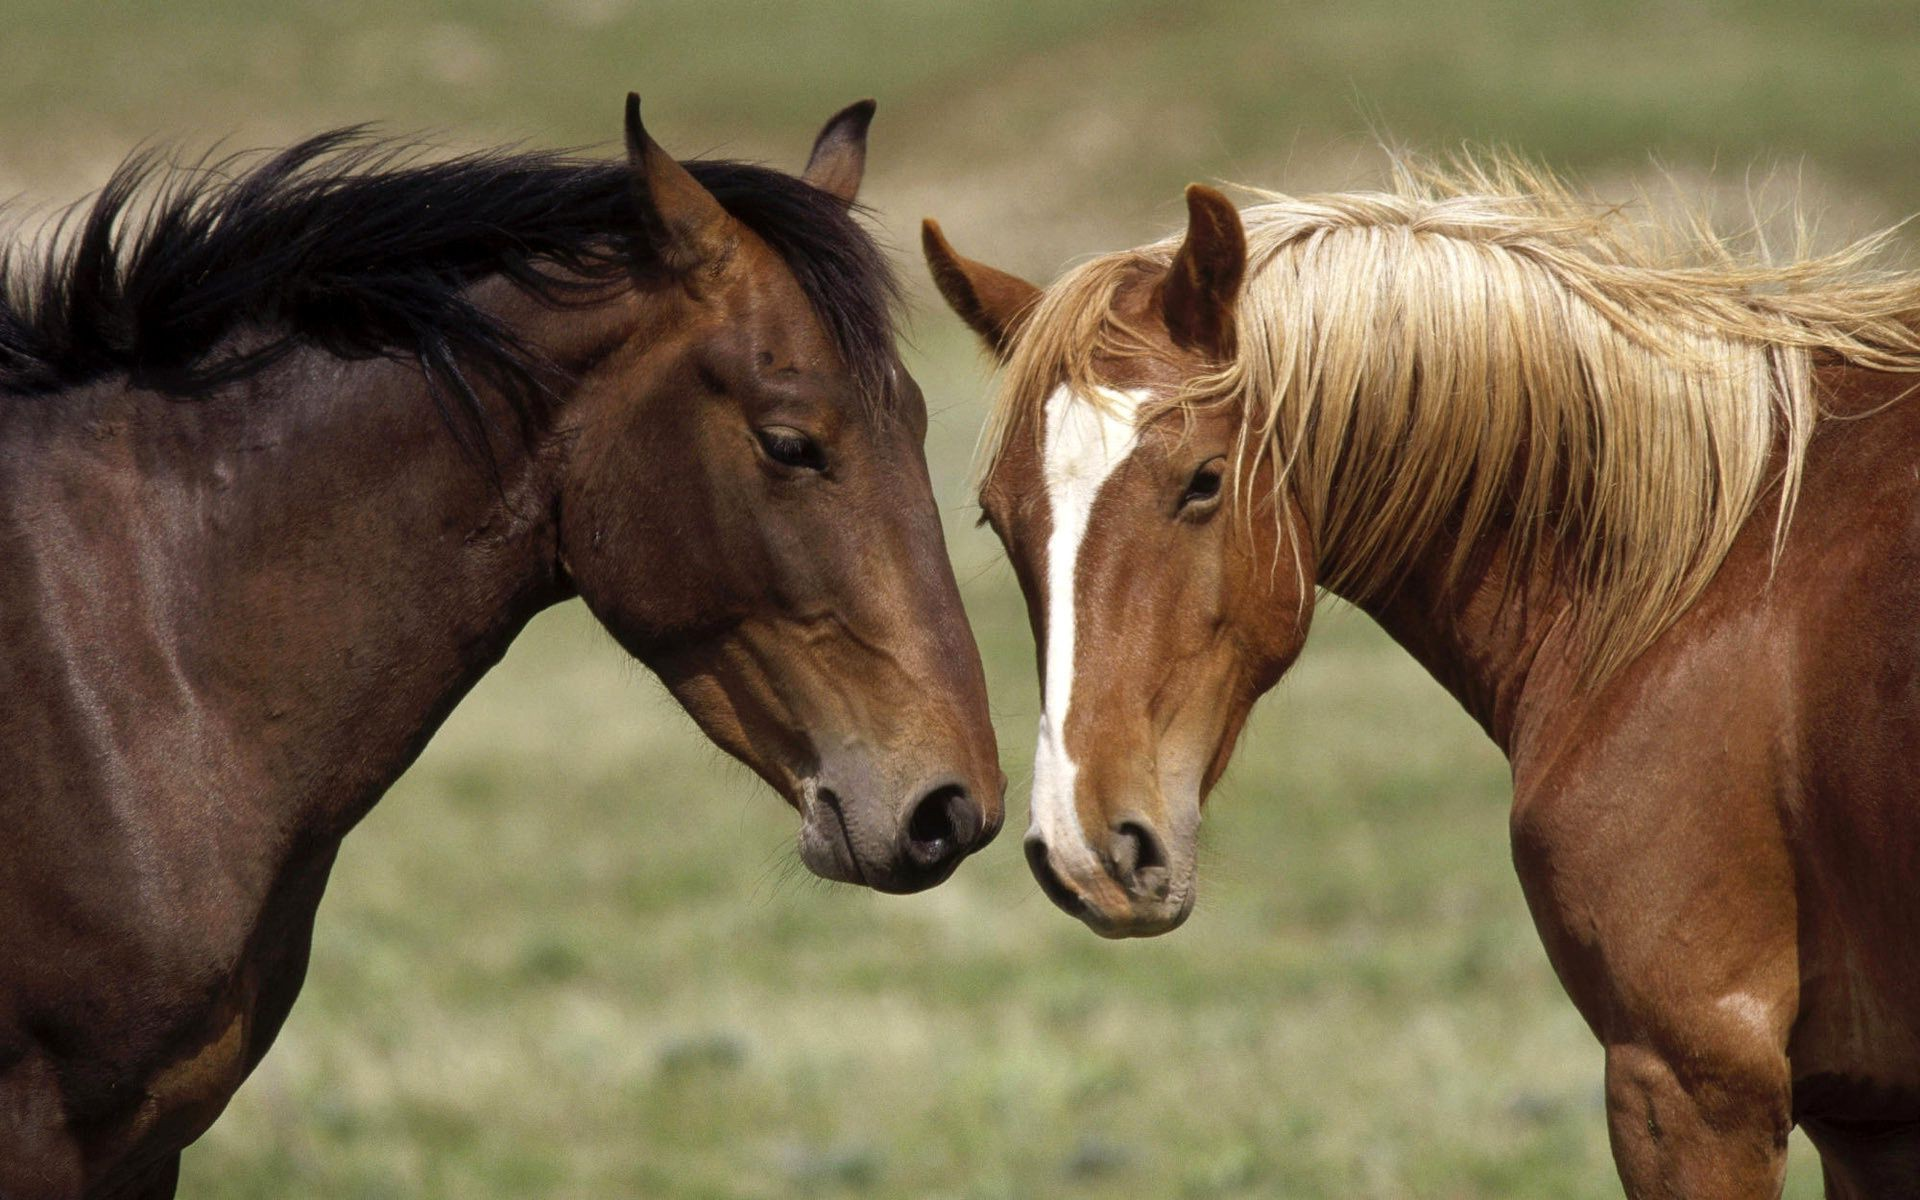 horses mare horse cavalry mammal mane stallion animal equine equestrian farm grass hayfield field pasture pony portrait chestnut thoroughbred foal